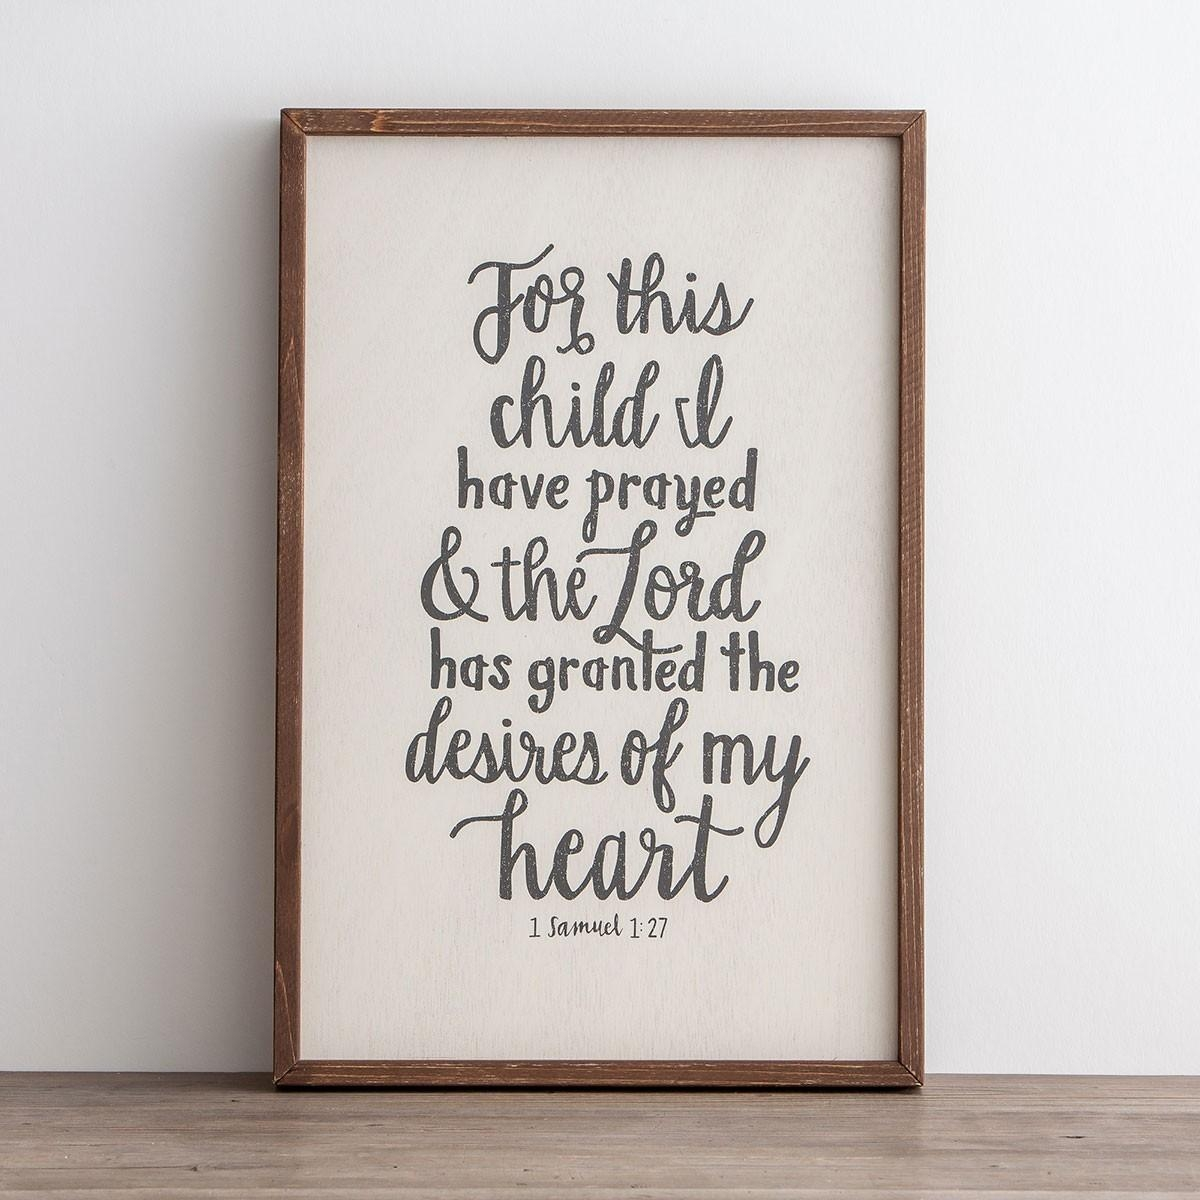 For This Child I Have Prayed – Framed Wall Board | Dayspring Throughout For This Child I Have Prayed Wall Art (View 3 of 20)